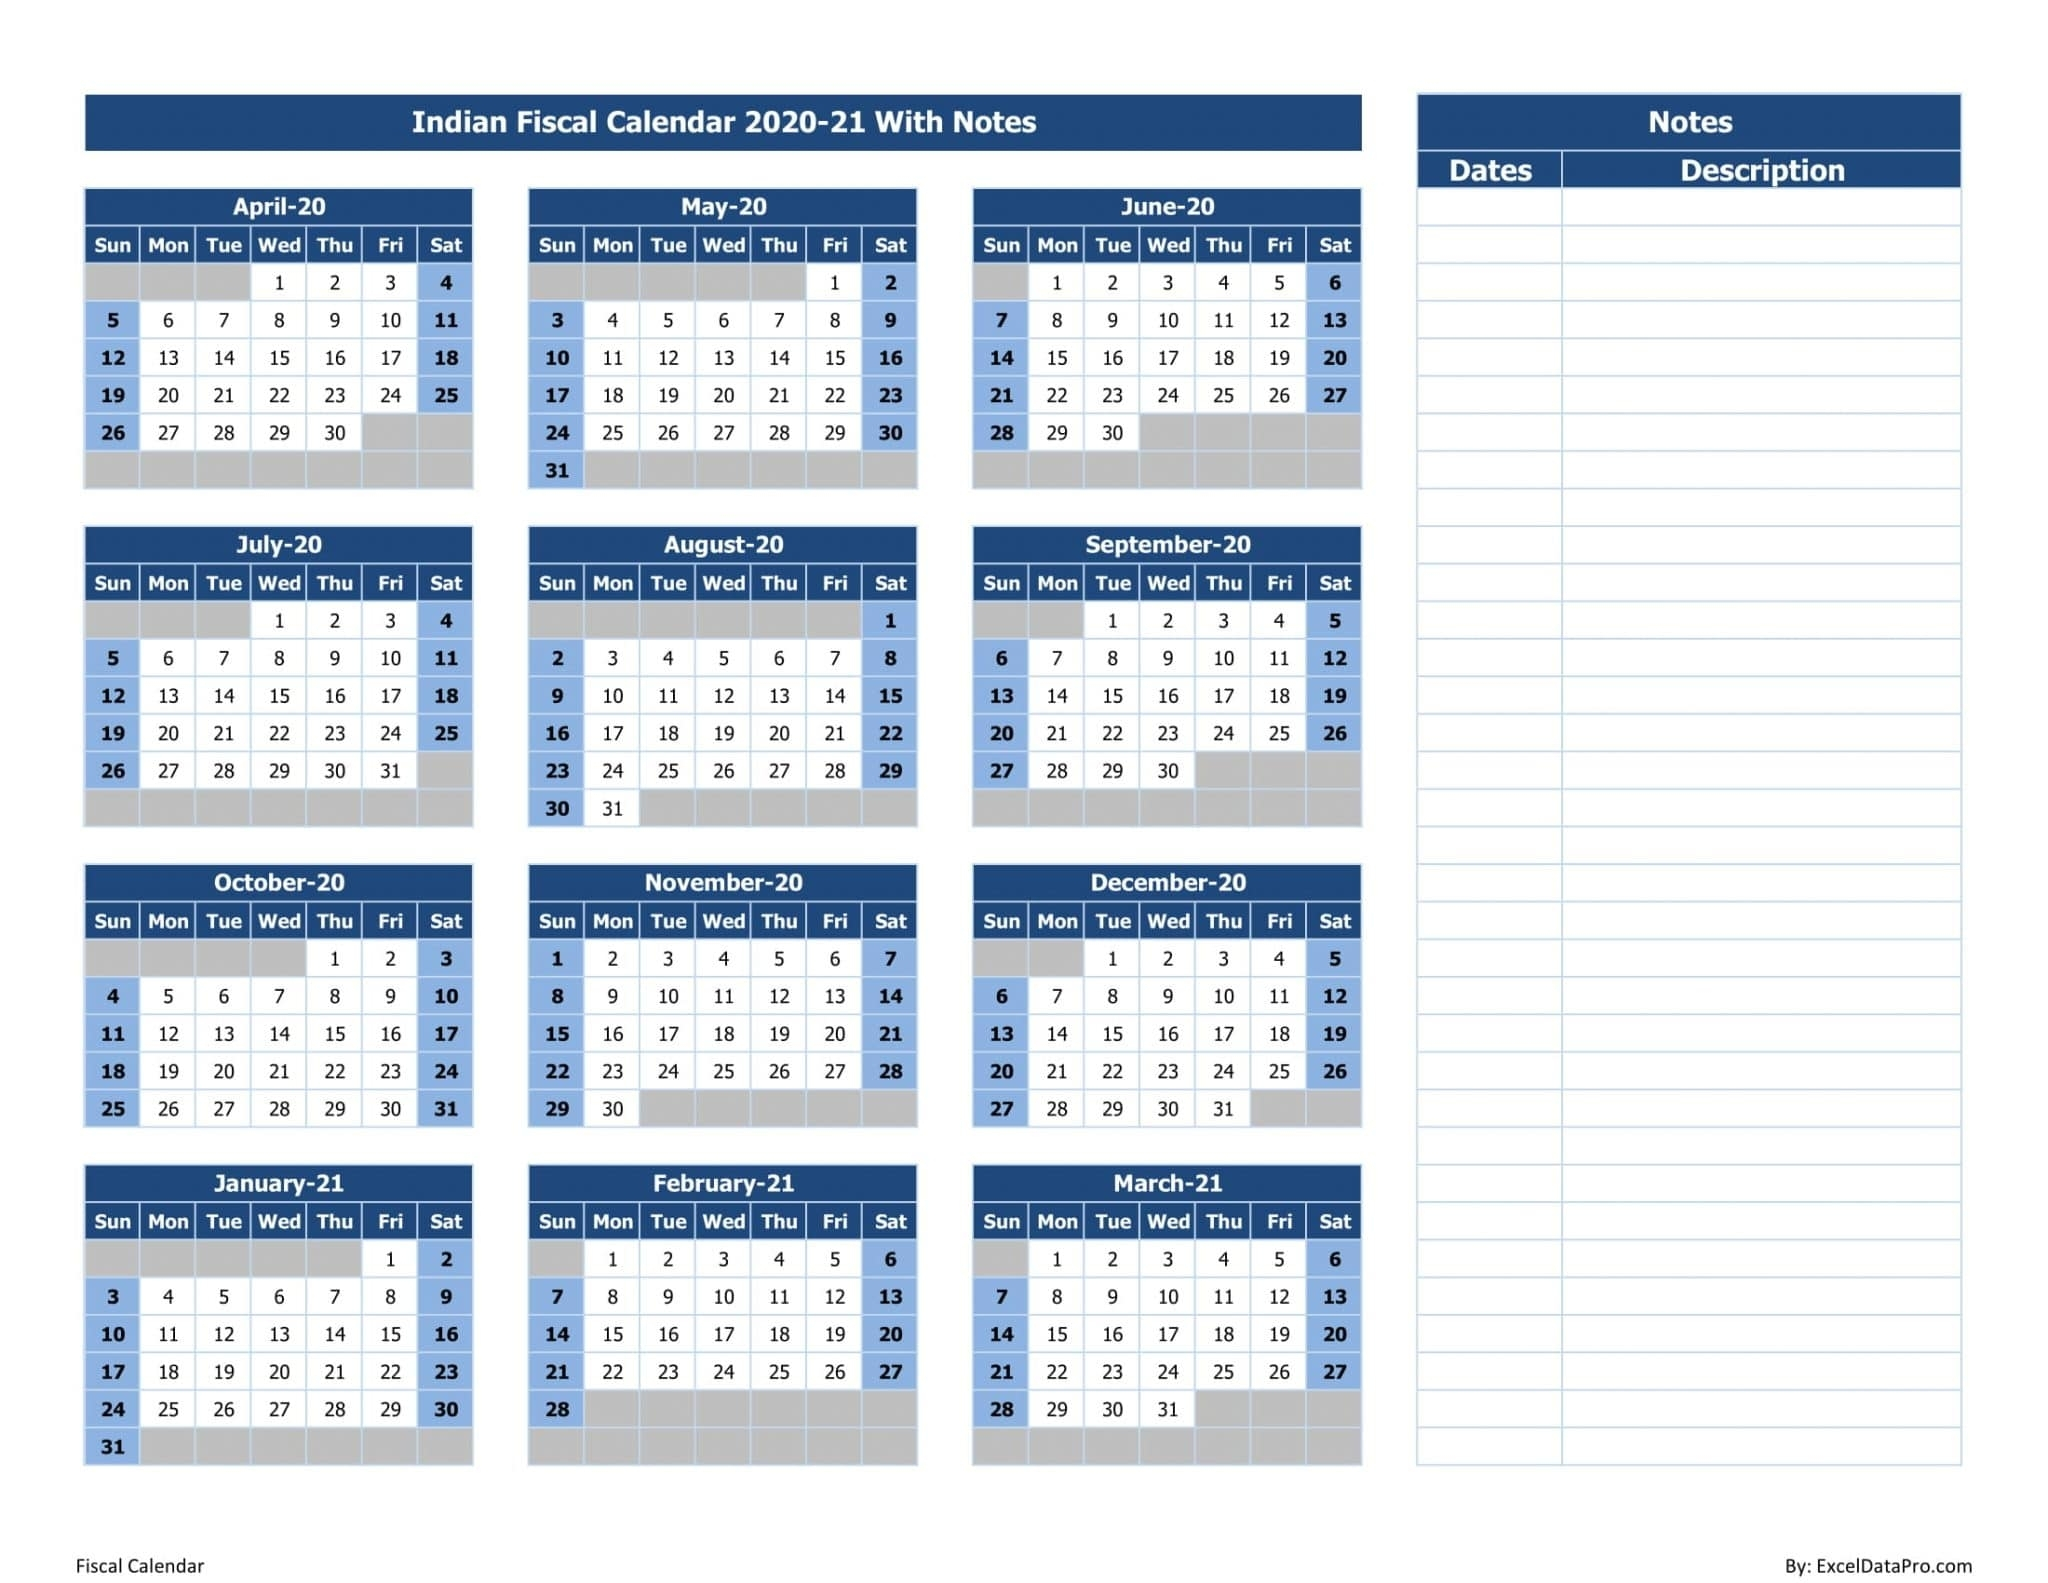 Download Indian Fiscal Calendar 2020-21 With Notes Excel